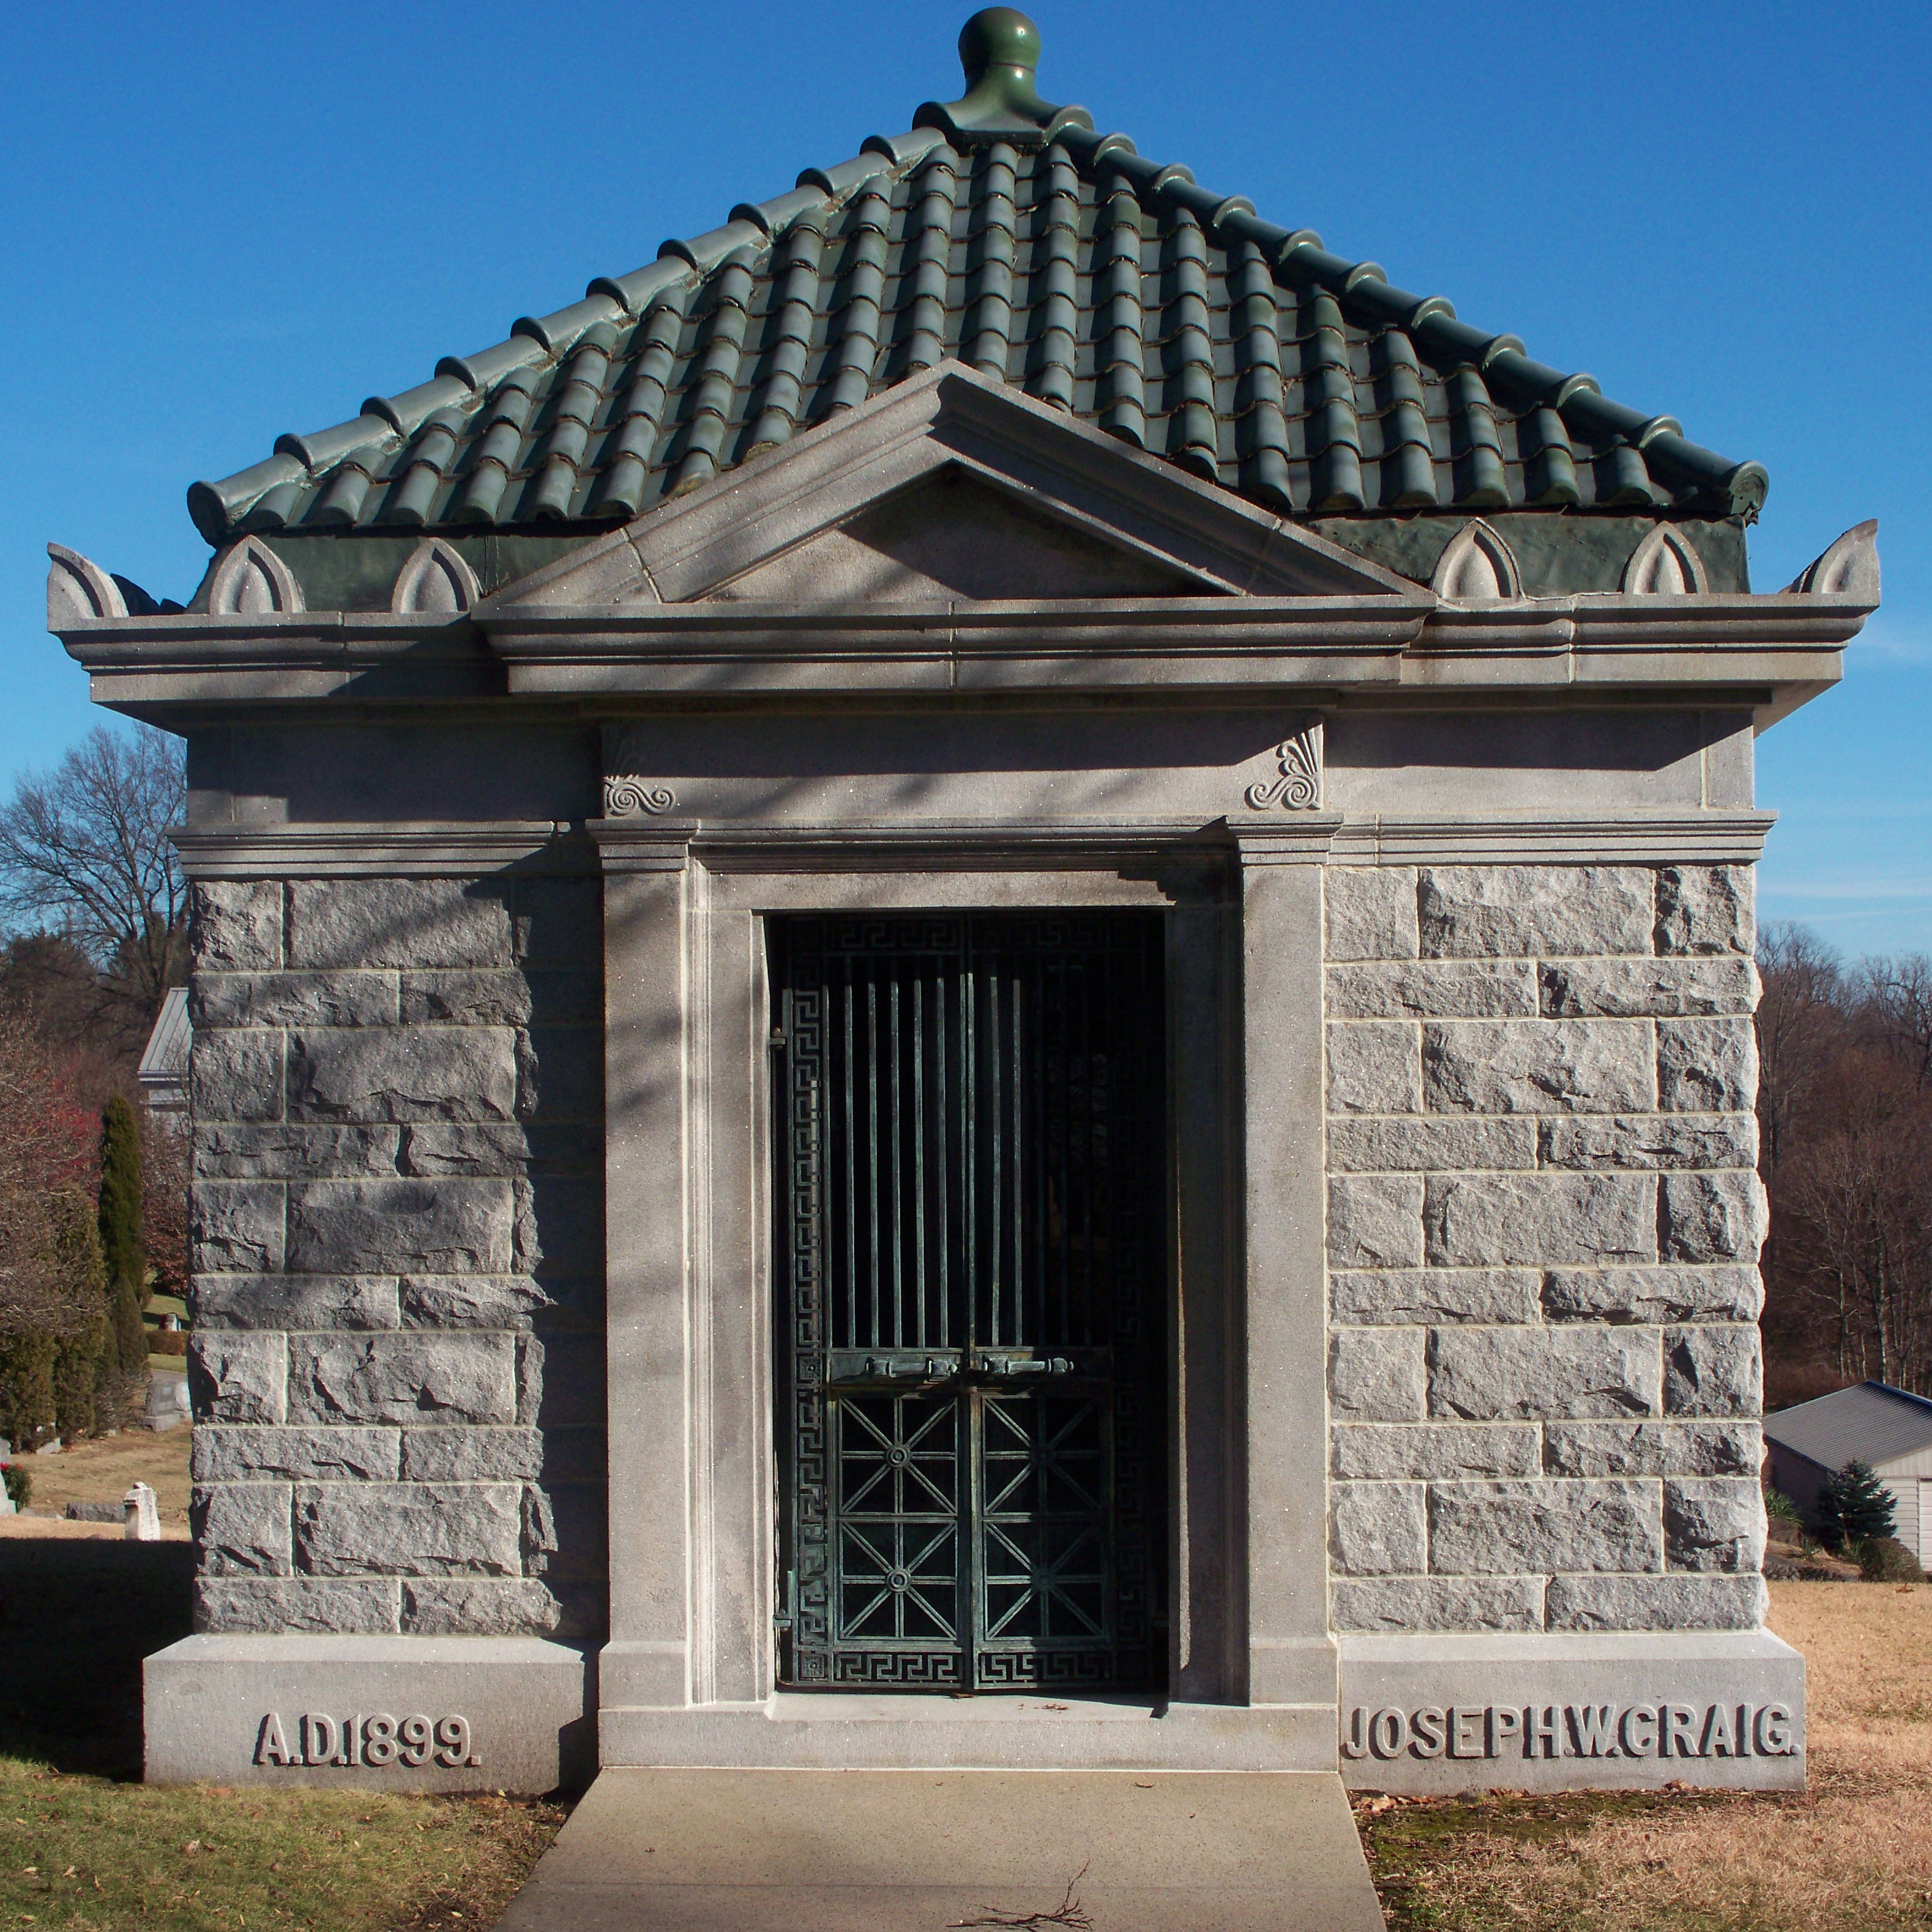 The green color of the tile almost perfectly matches the verdigris of the bronze doors; one wonders whether that effect was intended or a happy accident. & Sewickley Cemetery | Pittsburgh Cemeteries Pezcame.Com